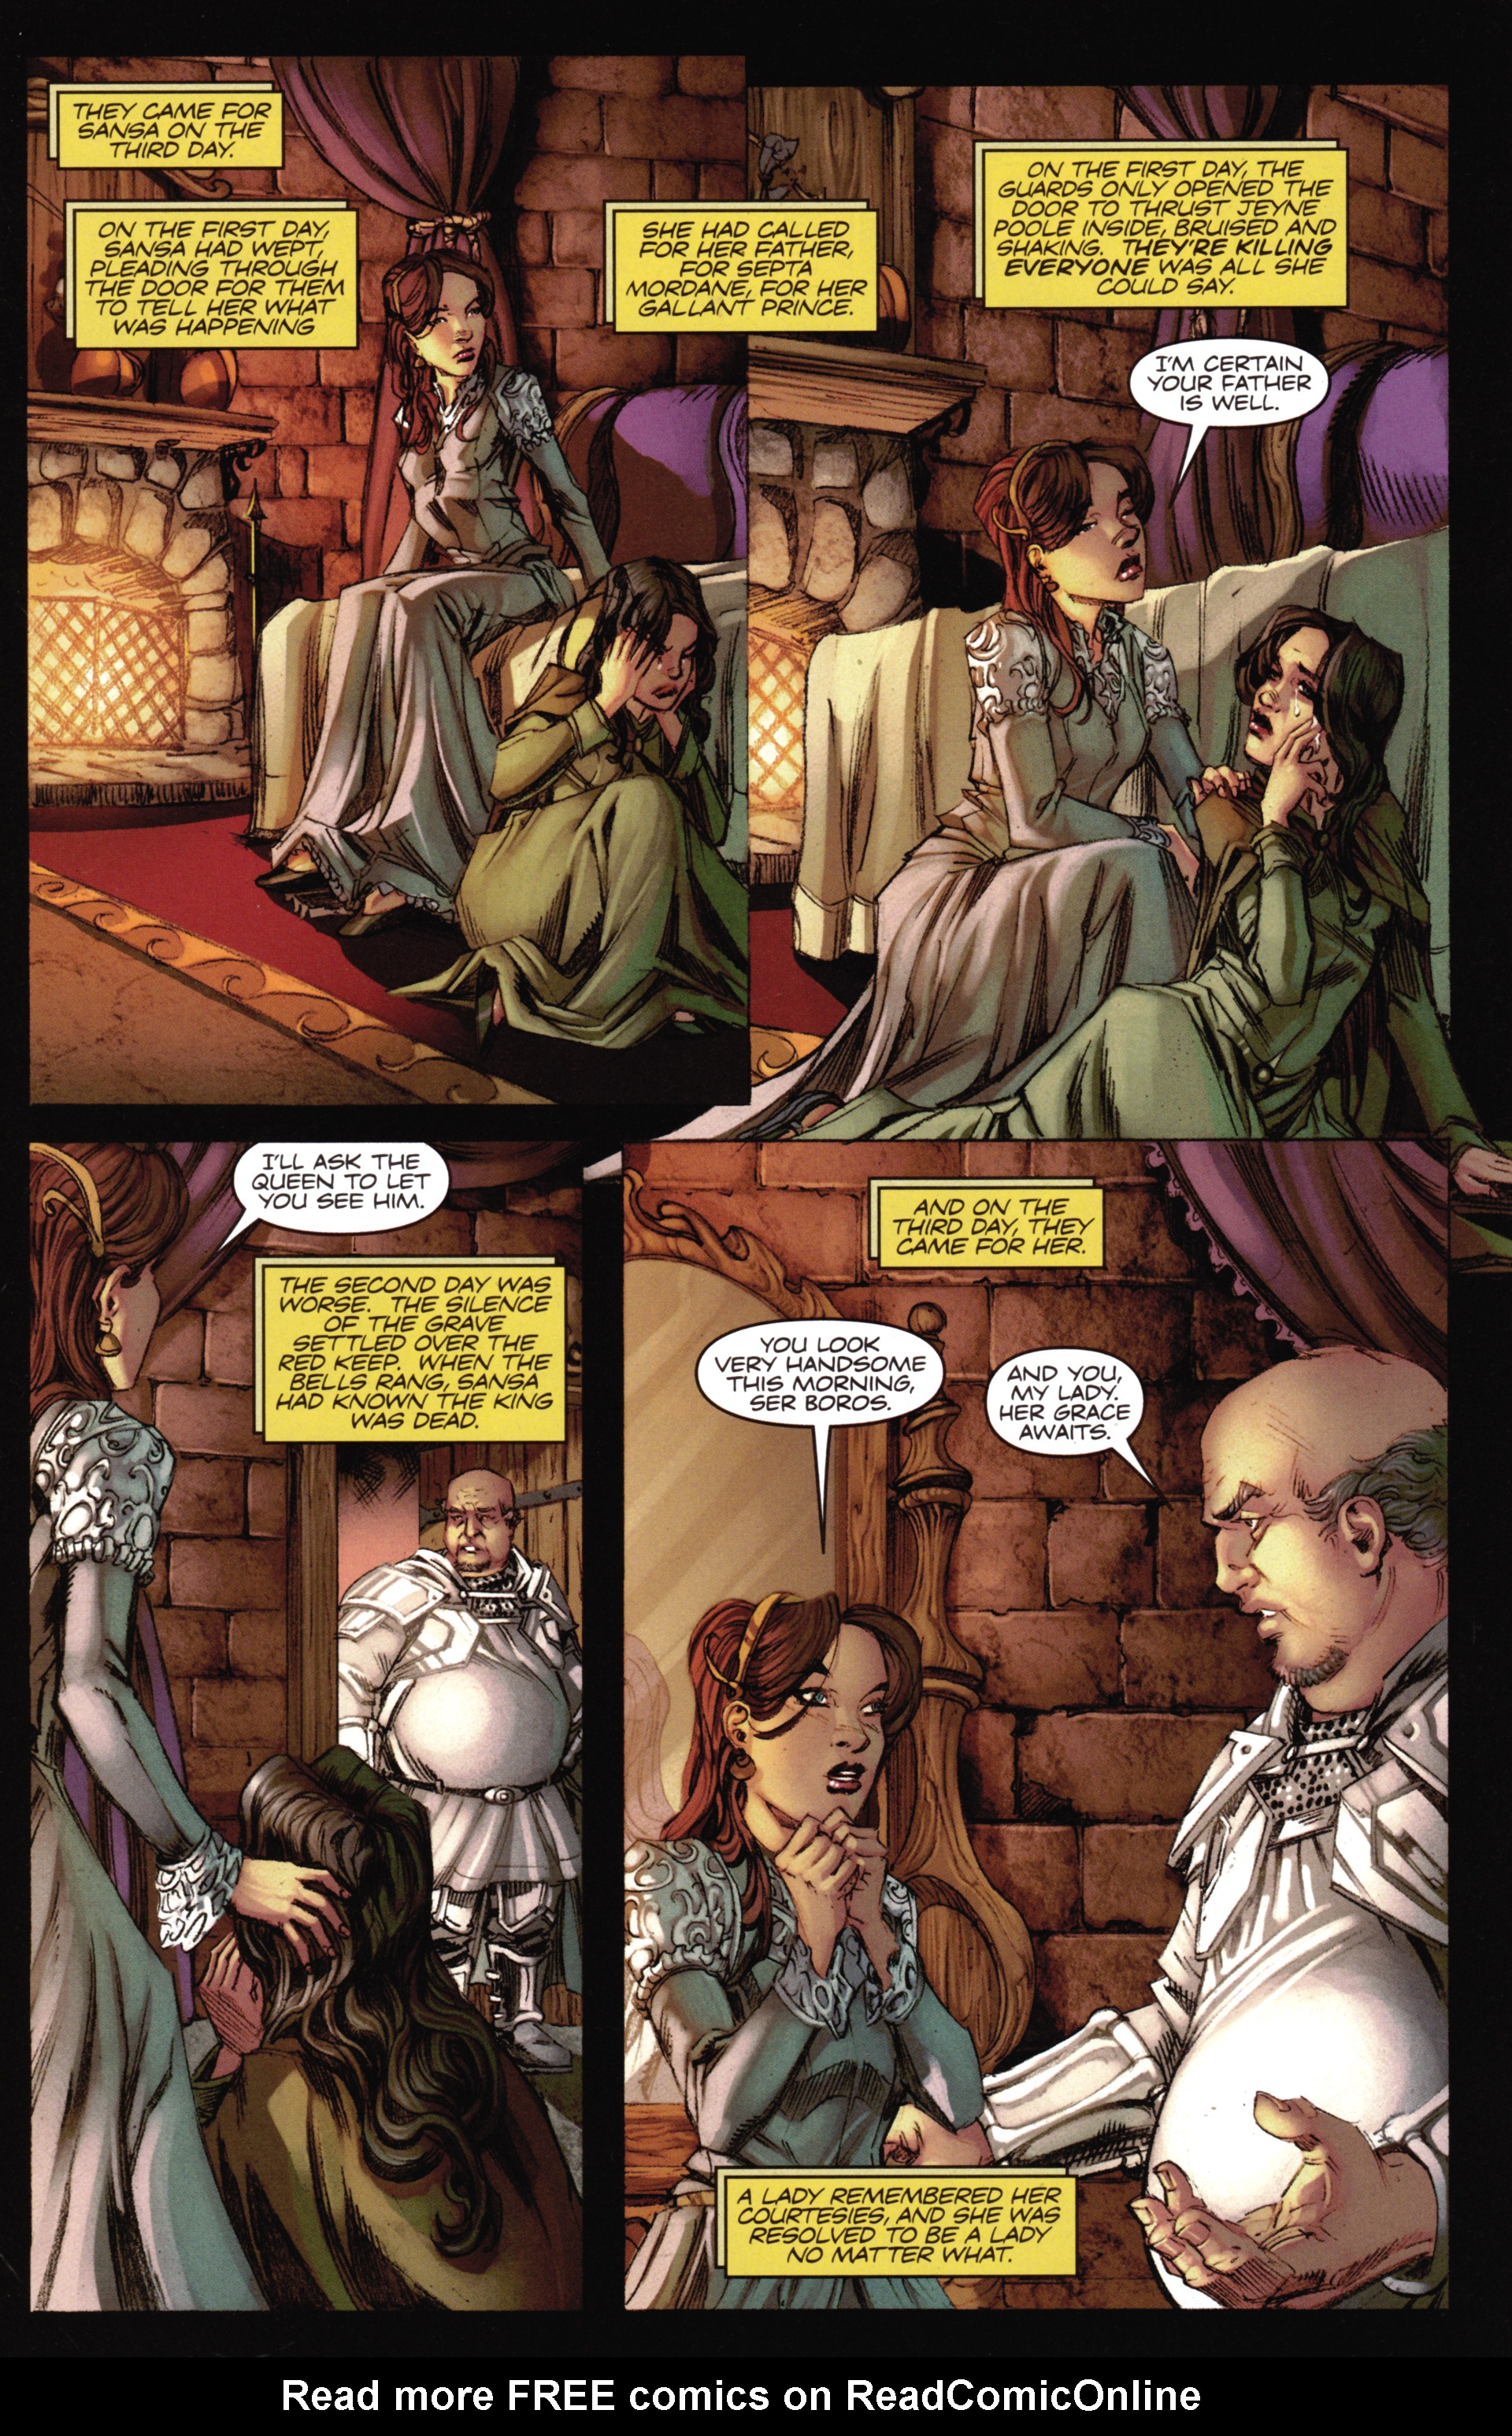 Read online A Game Of Thrones comic -  Issue #16 - 26